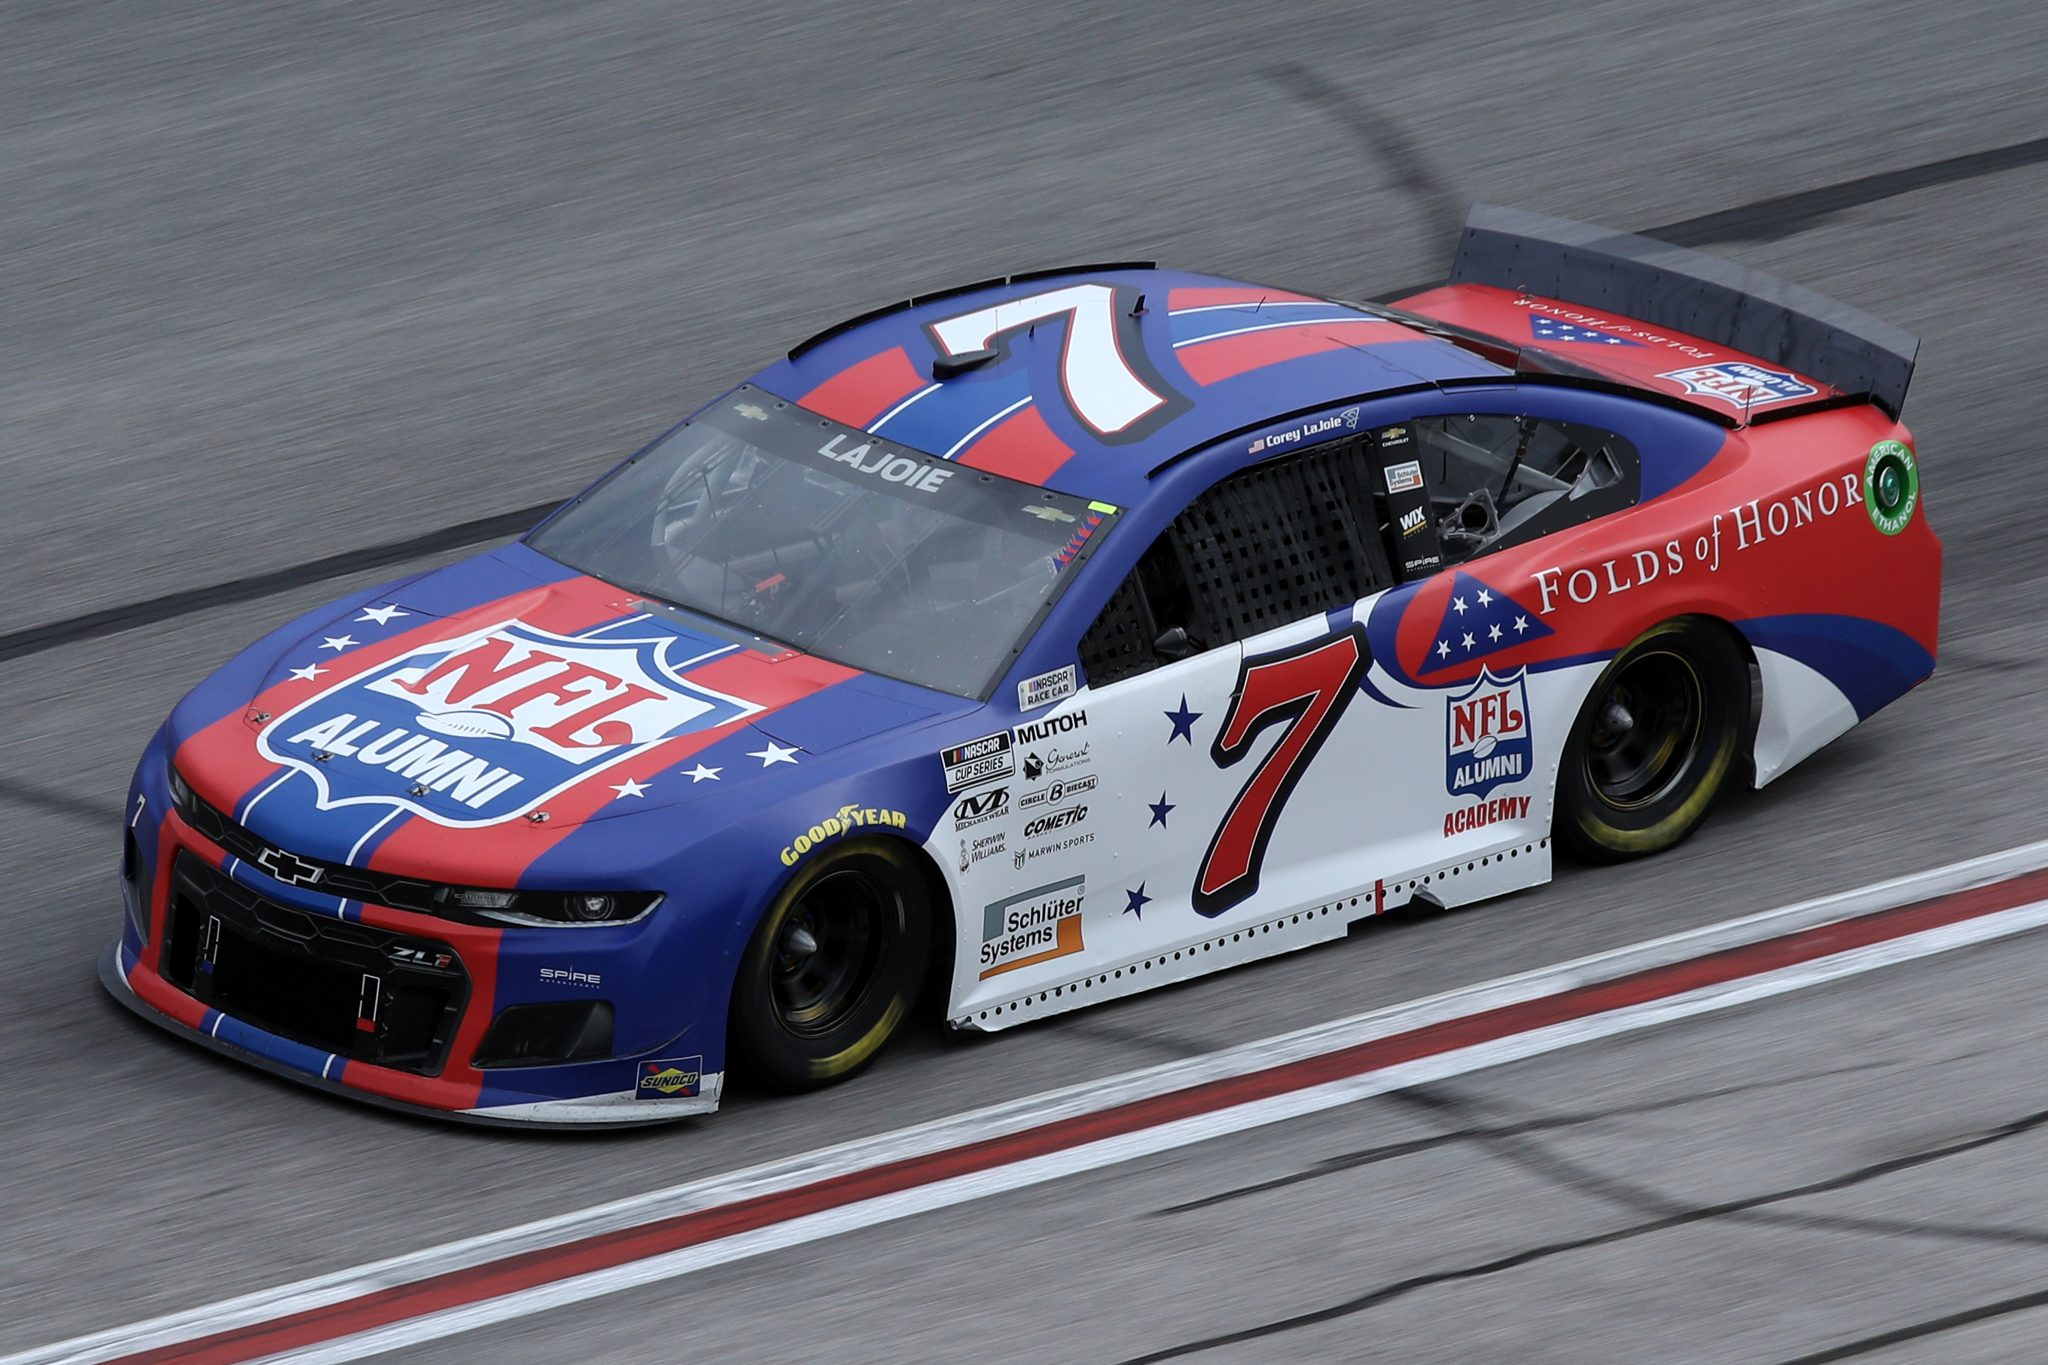 HAMPTON, GEORGIA - MARCH 21: Corey LaJoie, driver of the #7 NFL Alumni/Folds of Honor Chevrolet, drives during the NASCAR Cup Series Folds of Honor QuikTrip 500 at Atlanta Motor Speedway on March 21, 2021 in Hampton, Georgia. (Photo by Sean Gardner/Getty Images) | Getty Images